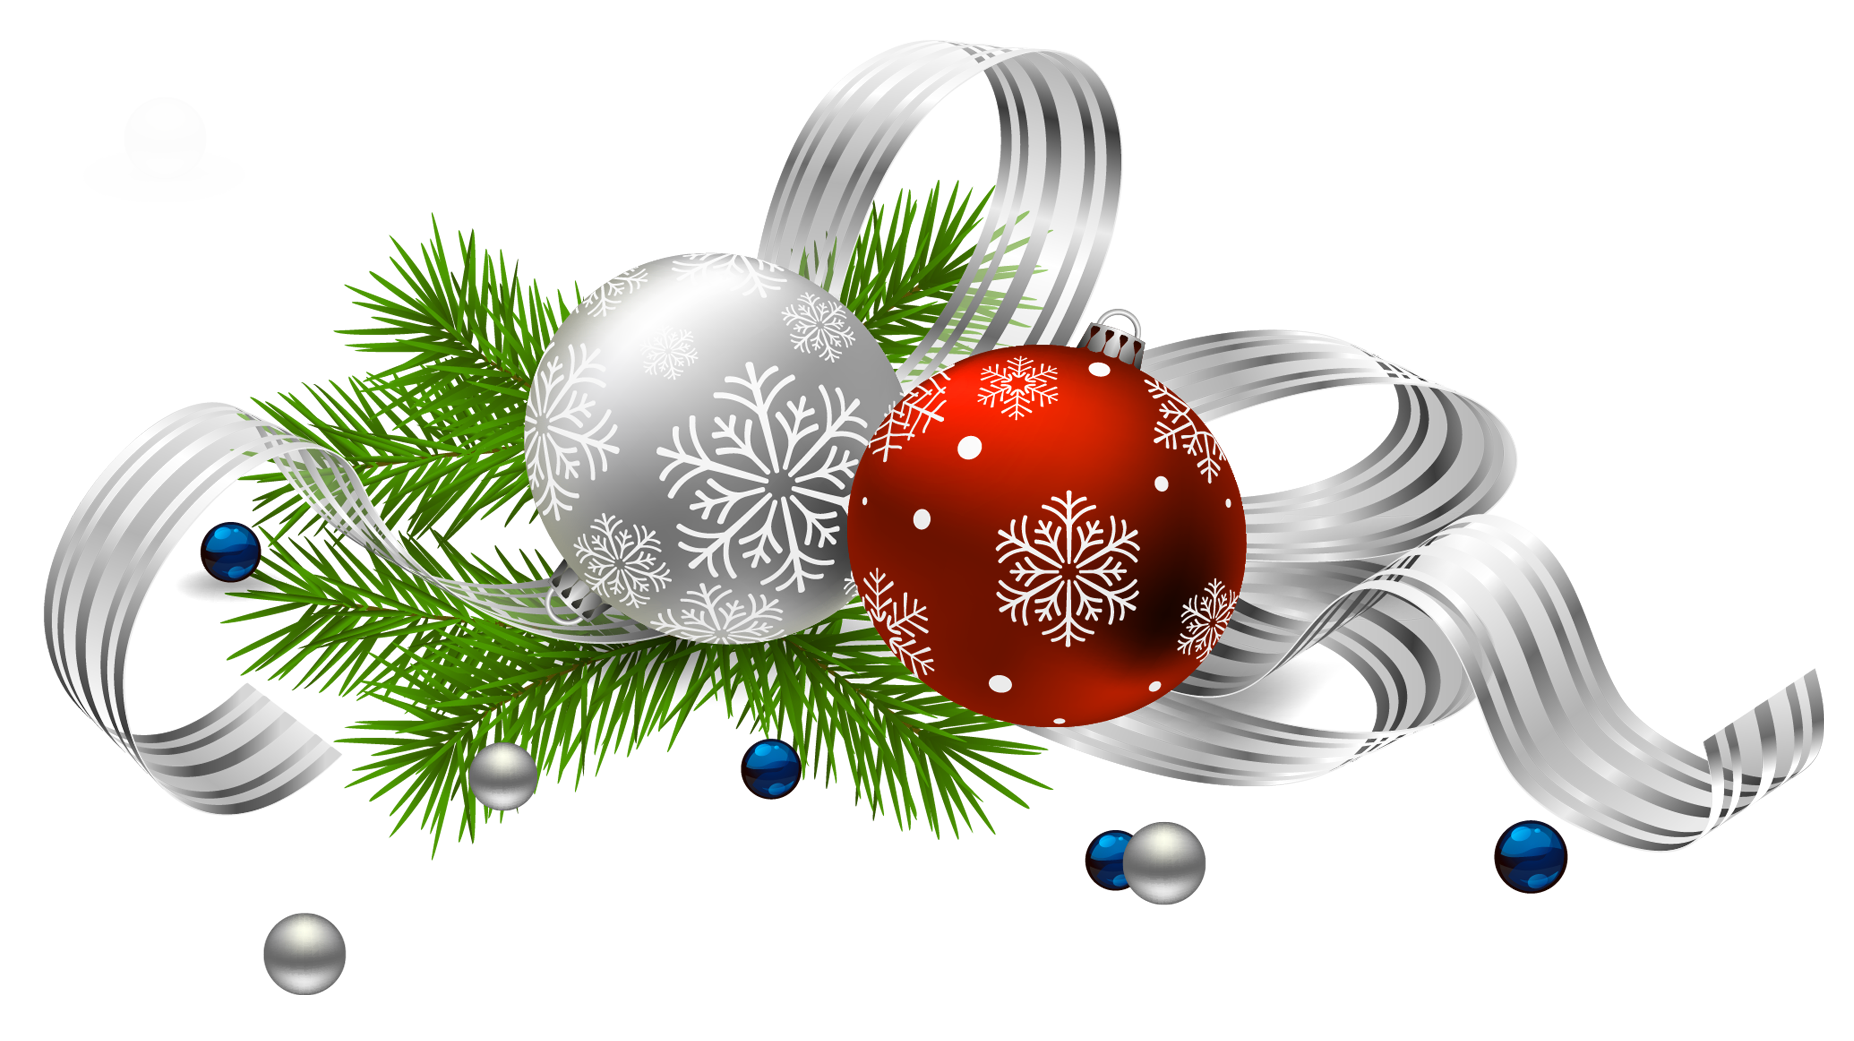 Christmas png files. Transparent file web icons